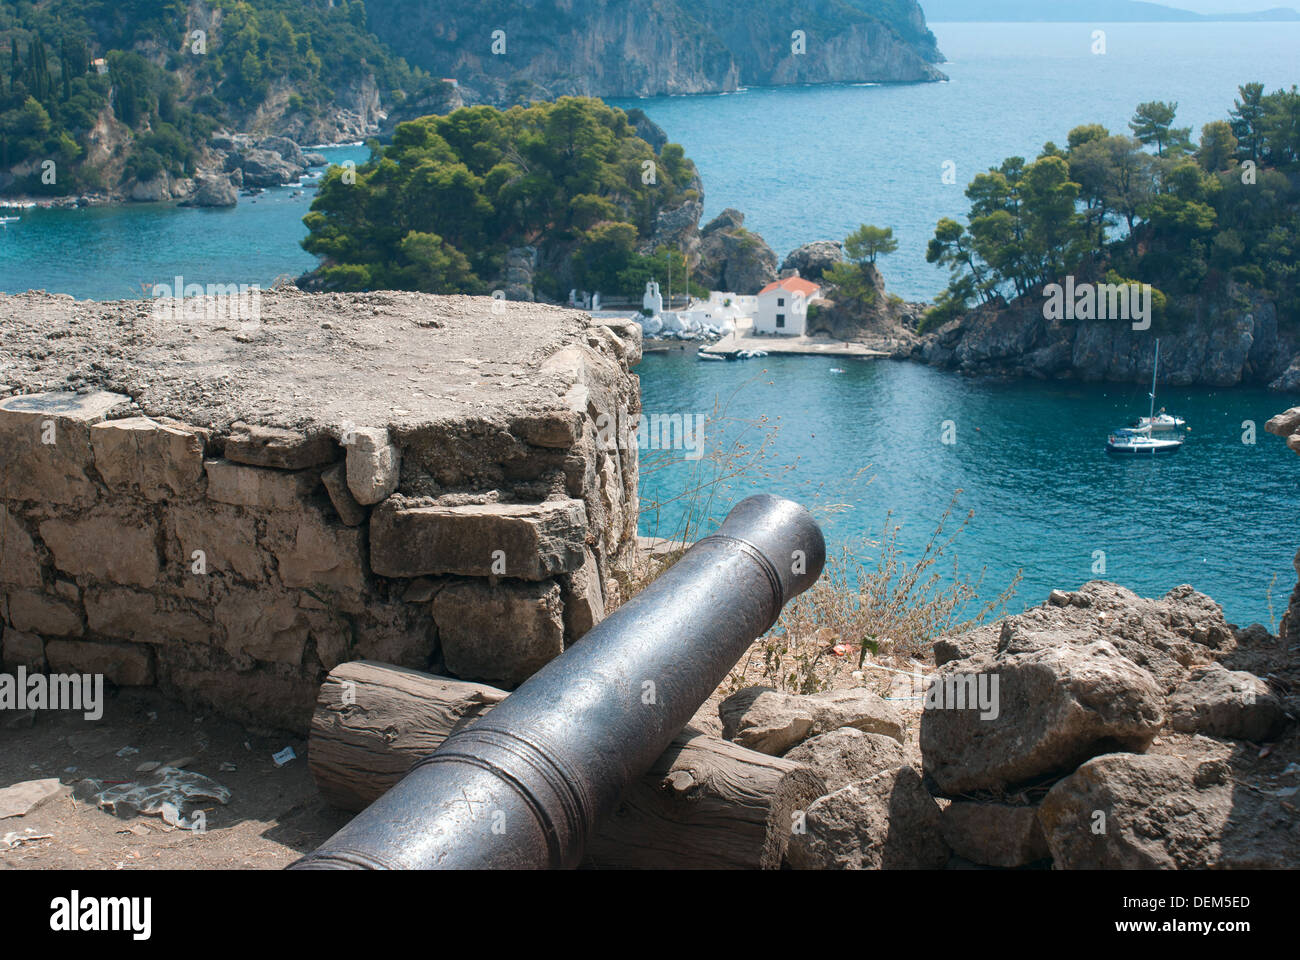 Famous castle of Templar knights at Nafplion in Greece - Stock Image